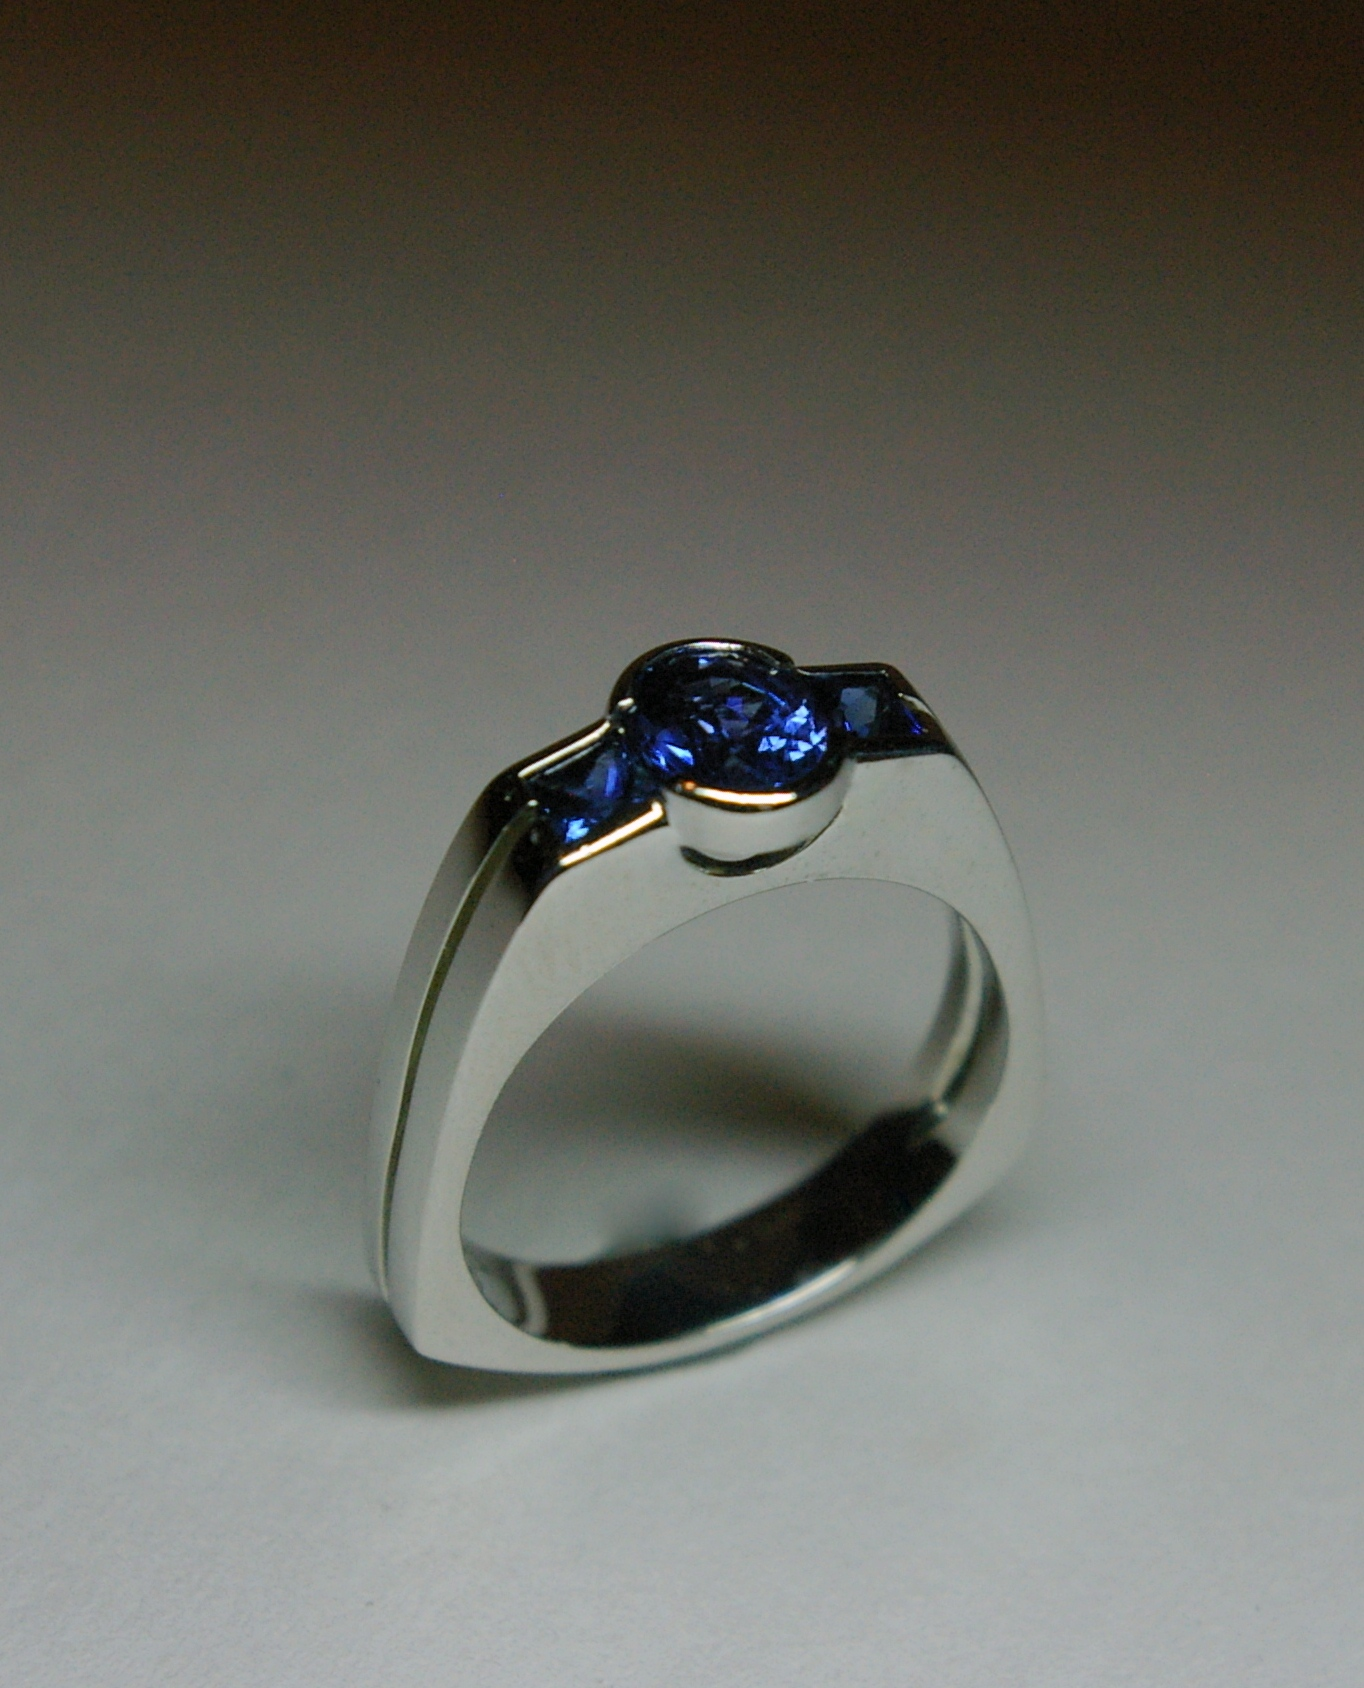 Custom Design Engagement Ring, Platinum set with Ceylon Sapphire